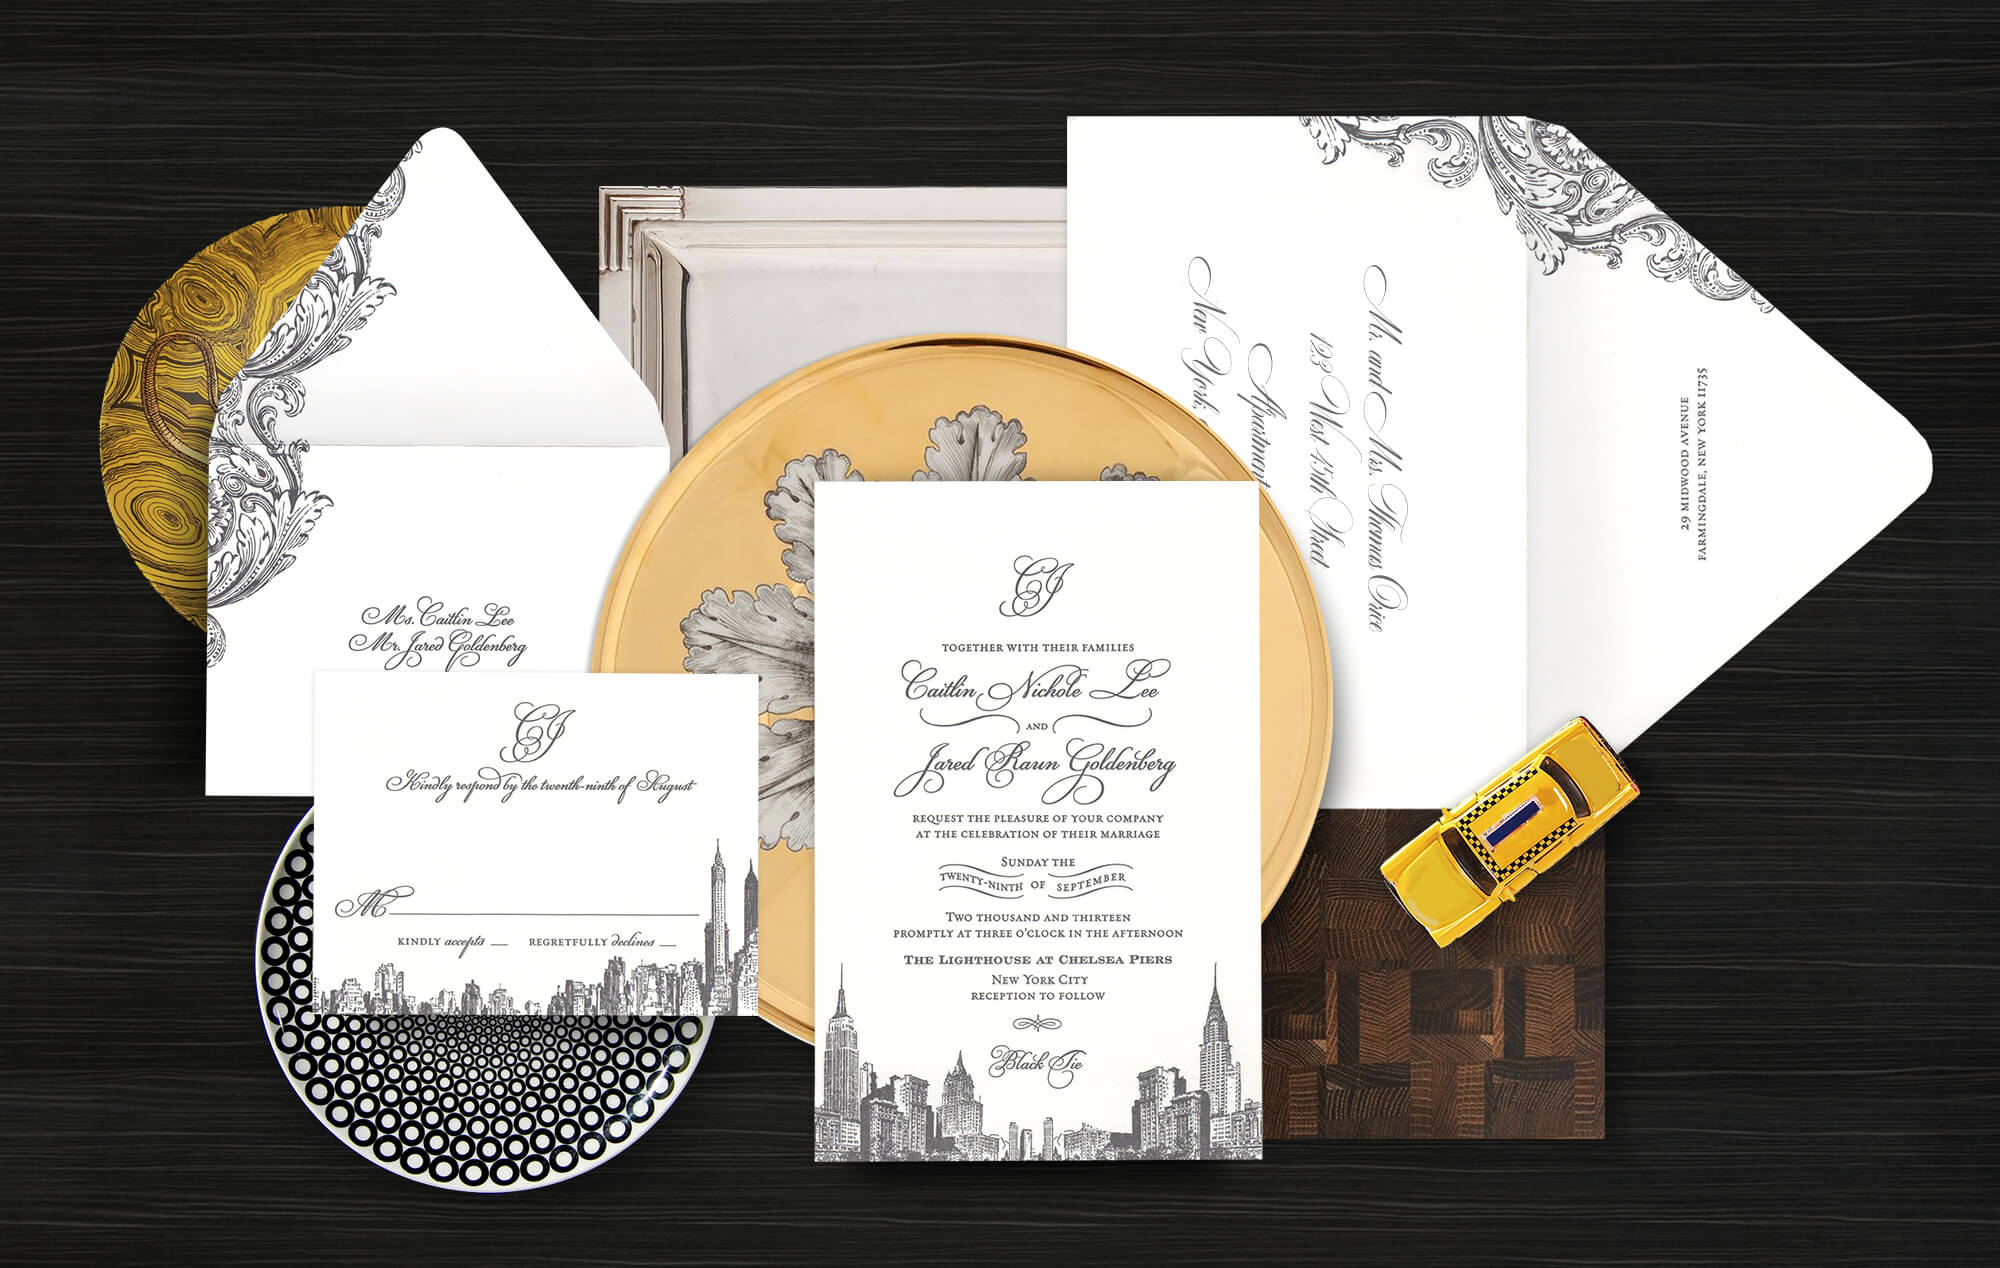 New York City skyline wedding invitation